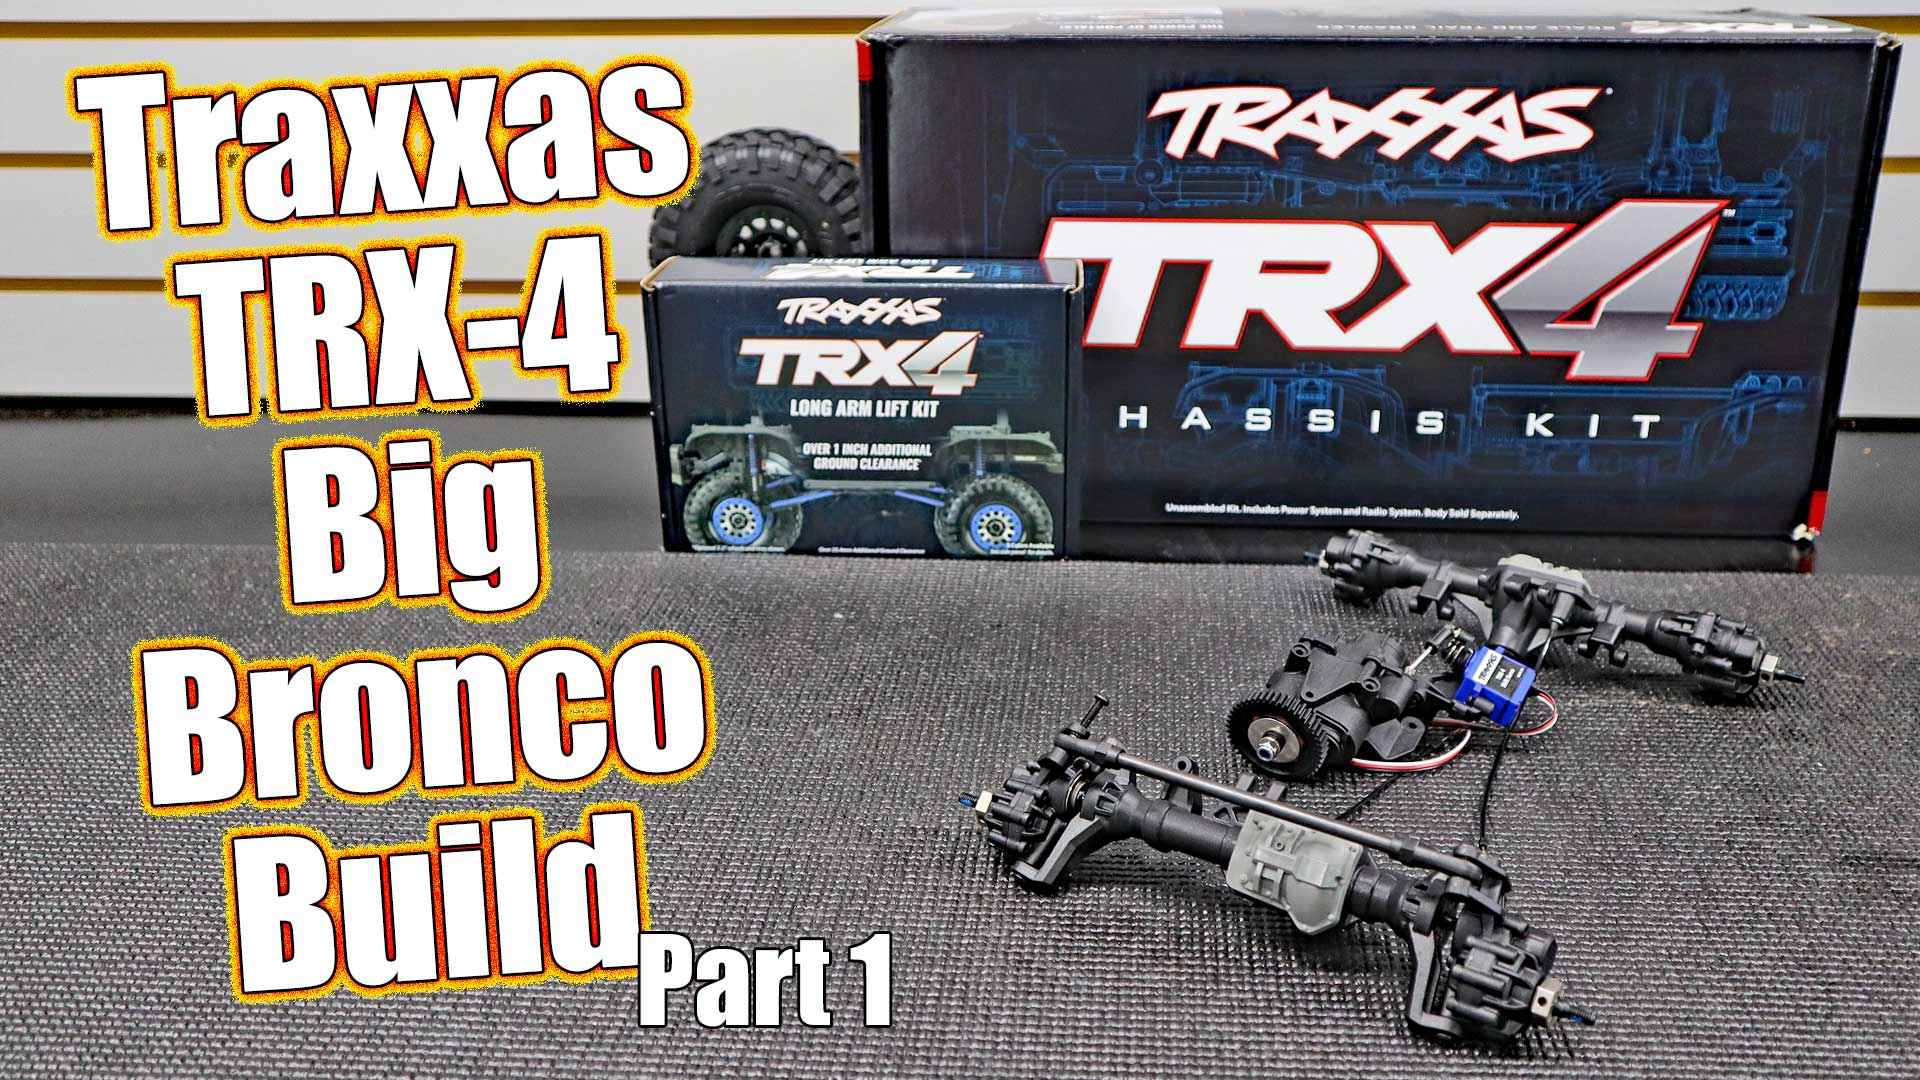 Traxxas TRX-4 Lifted Ford Bronco Project Truck – Series Pt 1 Driveline